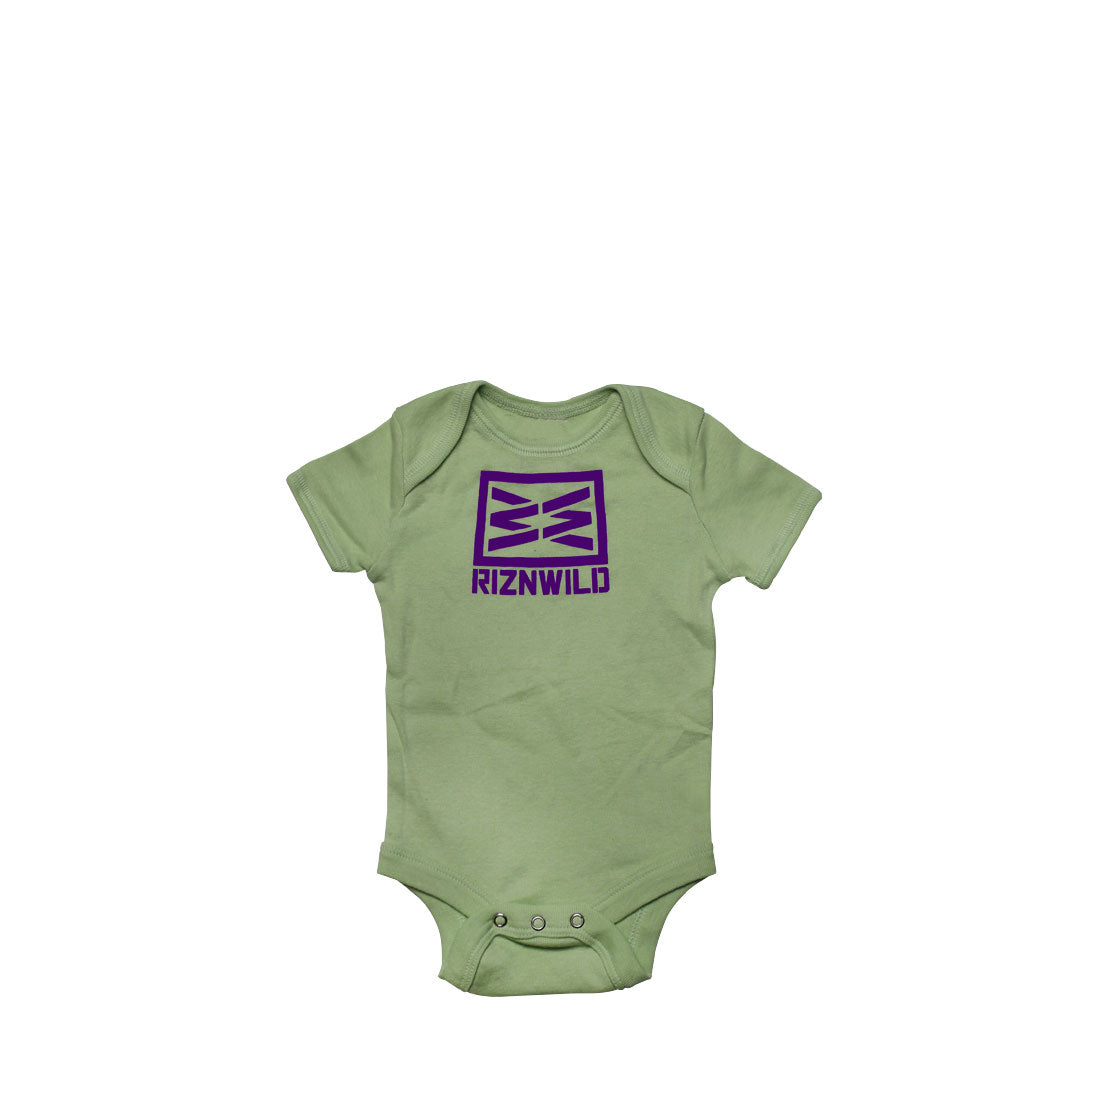 RIZNWILD | baby onesie, color pale green, purple screen printed logo